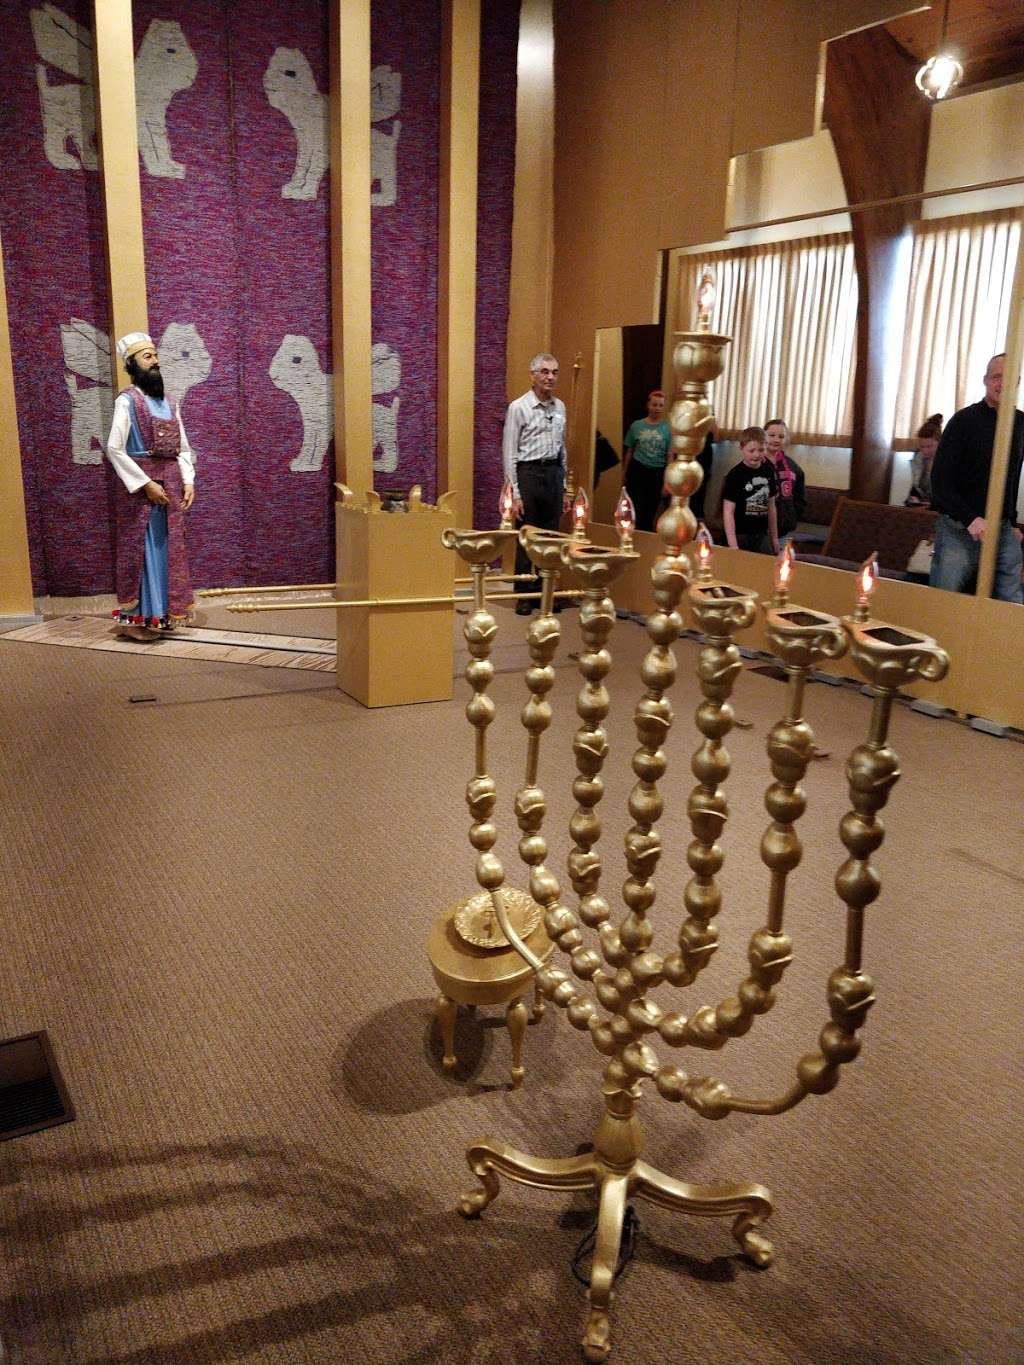 Biblical Tabernacle Reproduction - museum  | Photo 1 of 10 | Address: 2209 Millstream Rd, Lancaster, PA 17602, USA | Phone: (717) 299-0954